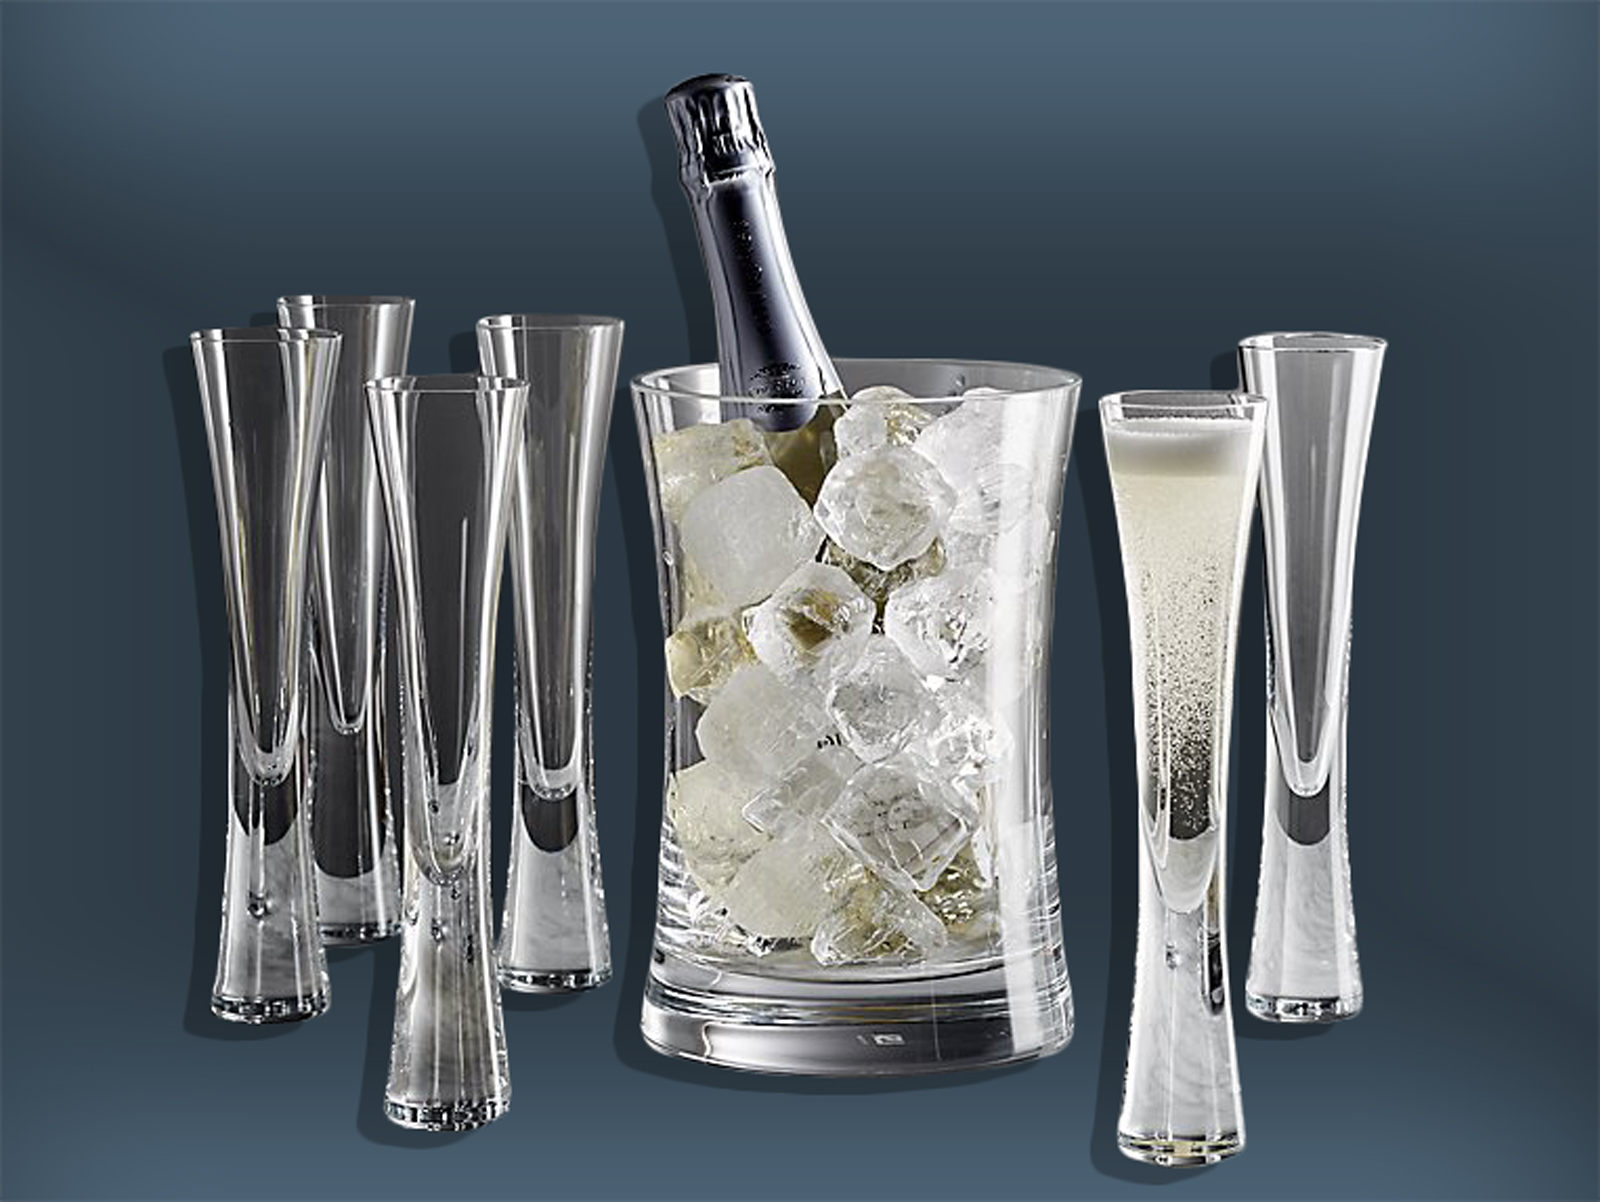 Crate & Barrel Toasting Glasses Set